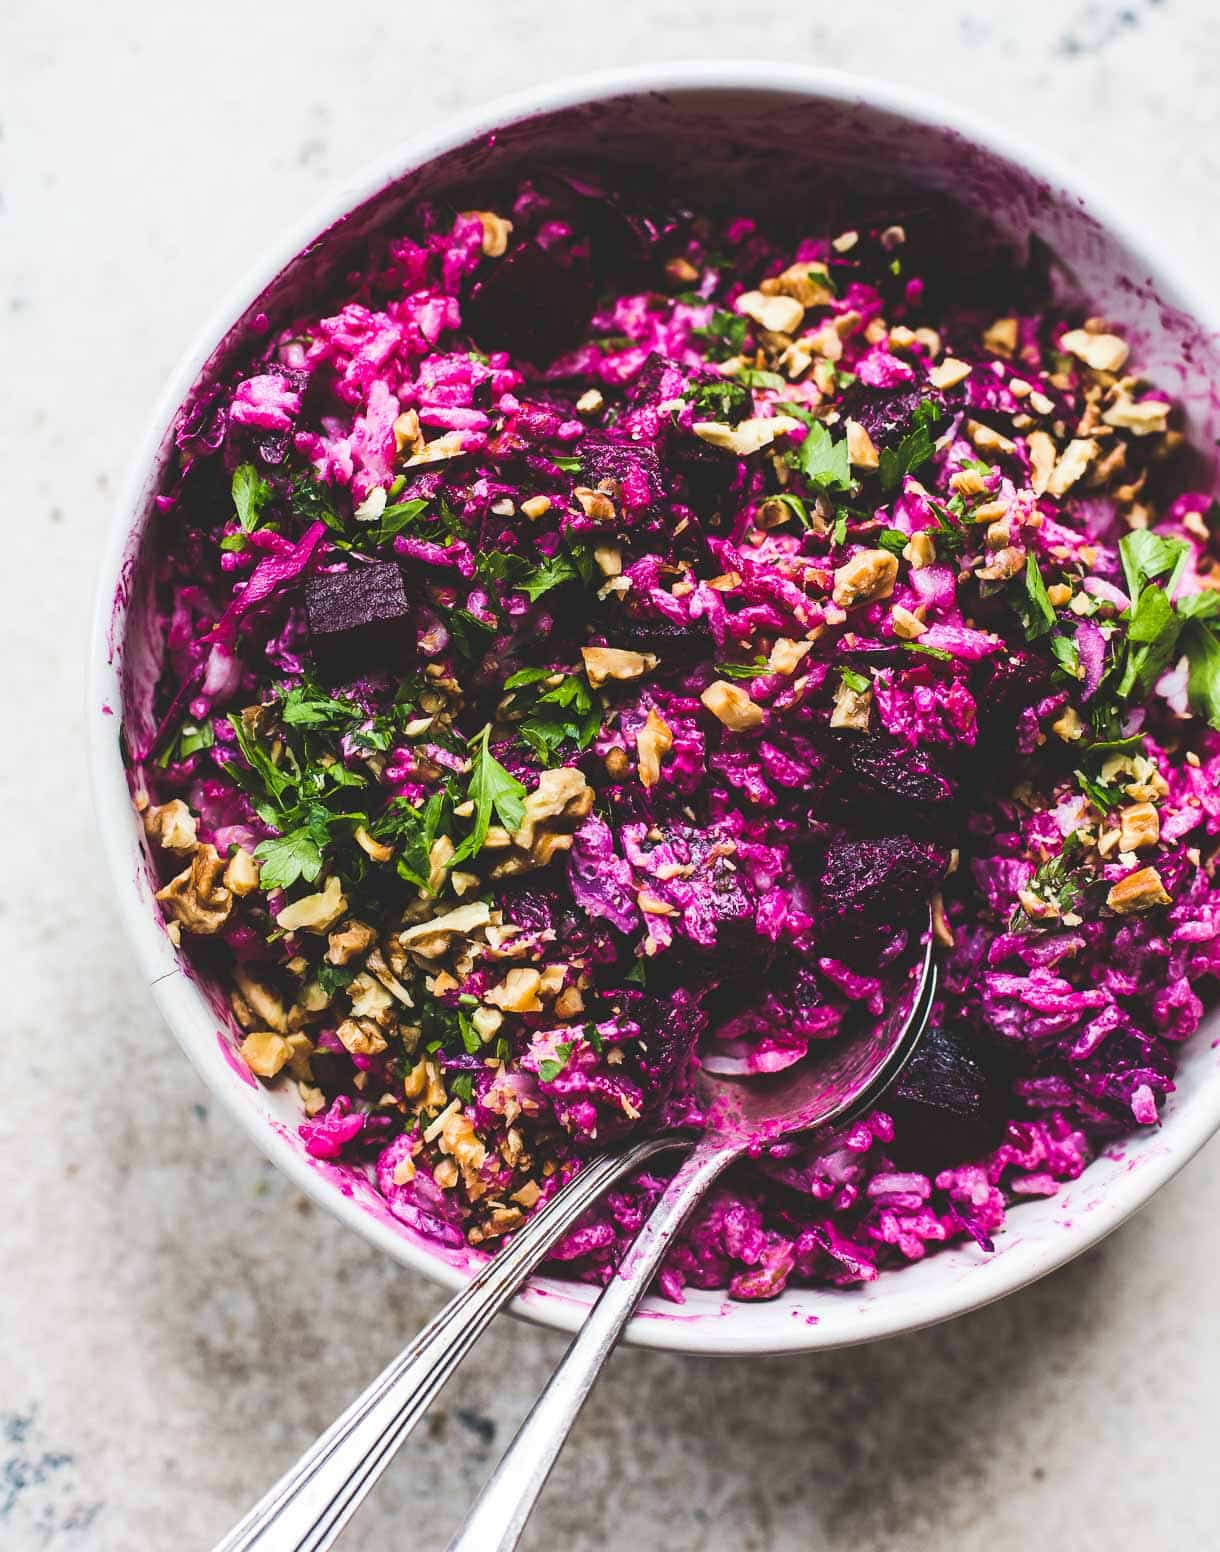 Super Pink Rice and Roasted Beet Salad Recipe {gluten-free}